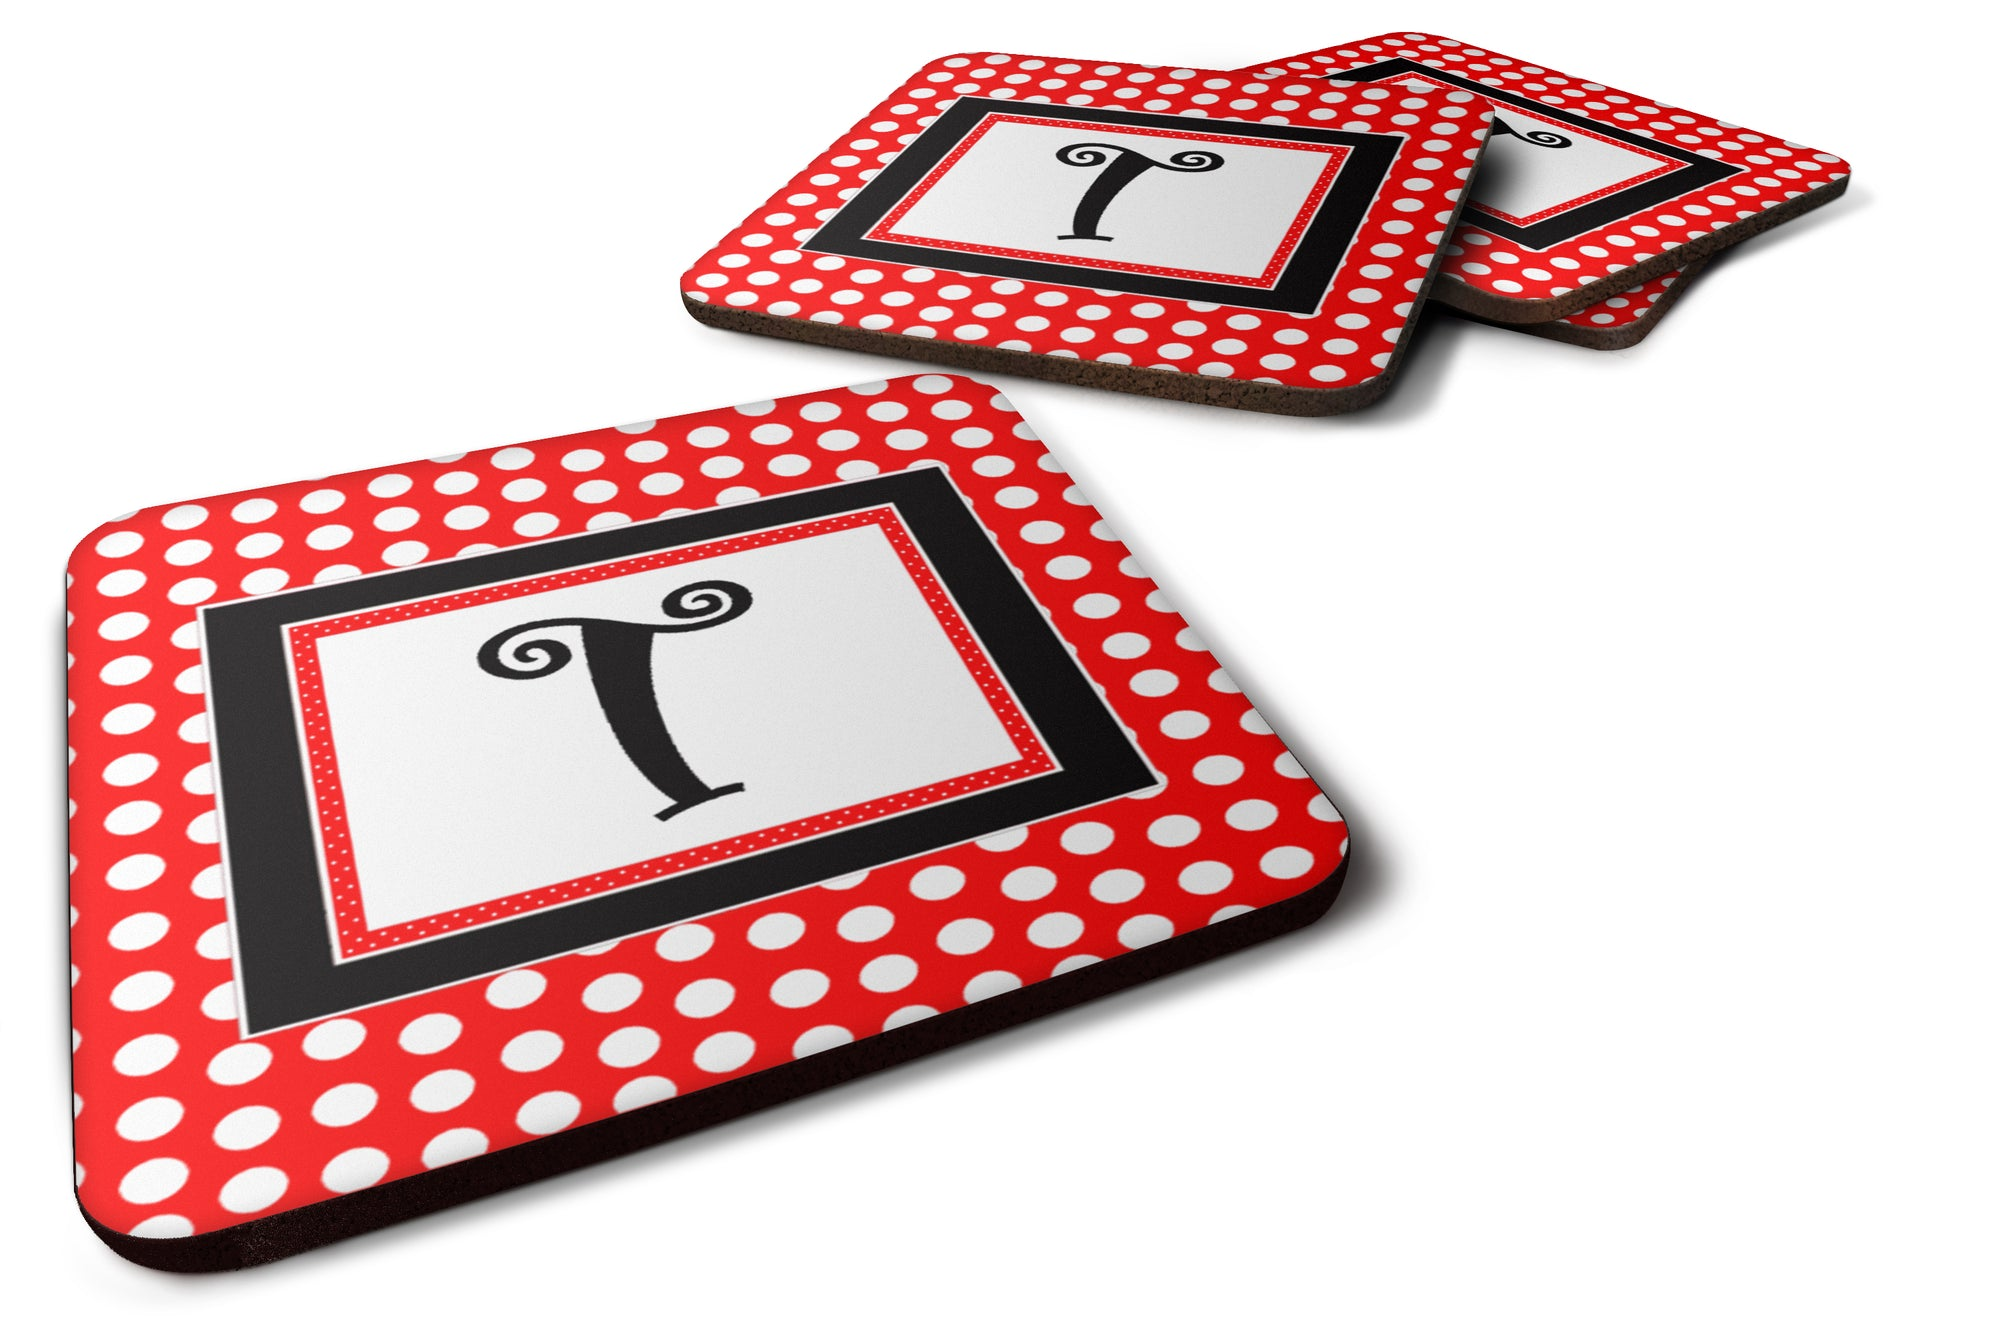 Set of 4 Monogram - Red Black Polka Dots Foam Coasters Initial Letter T by Caroline's Treasures